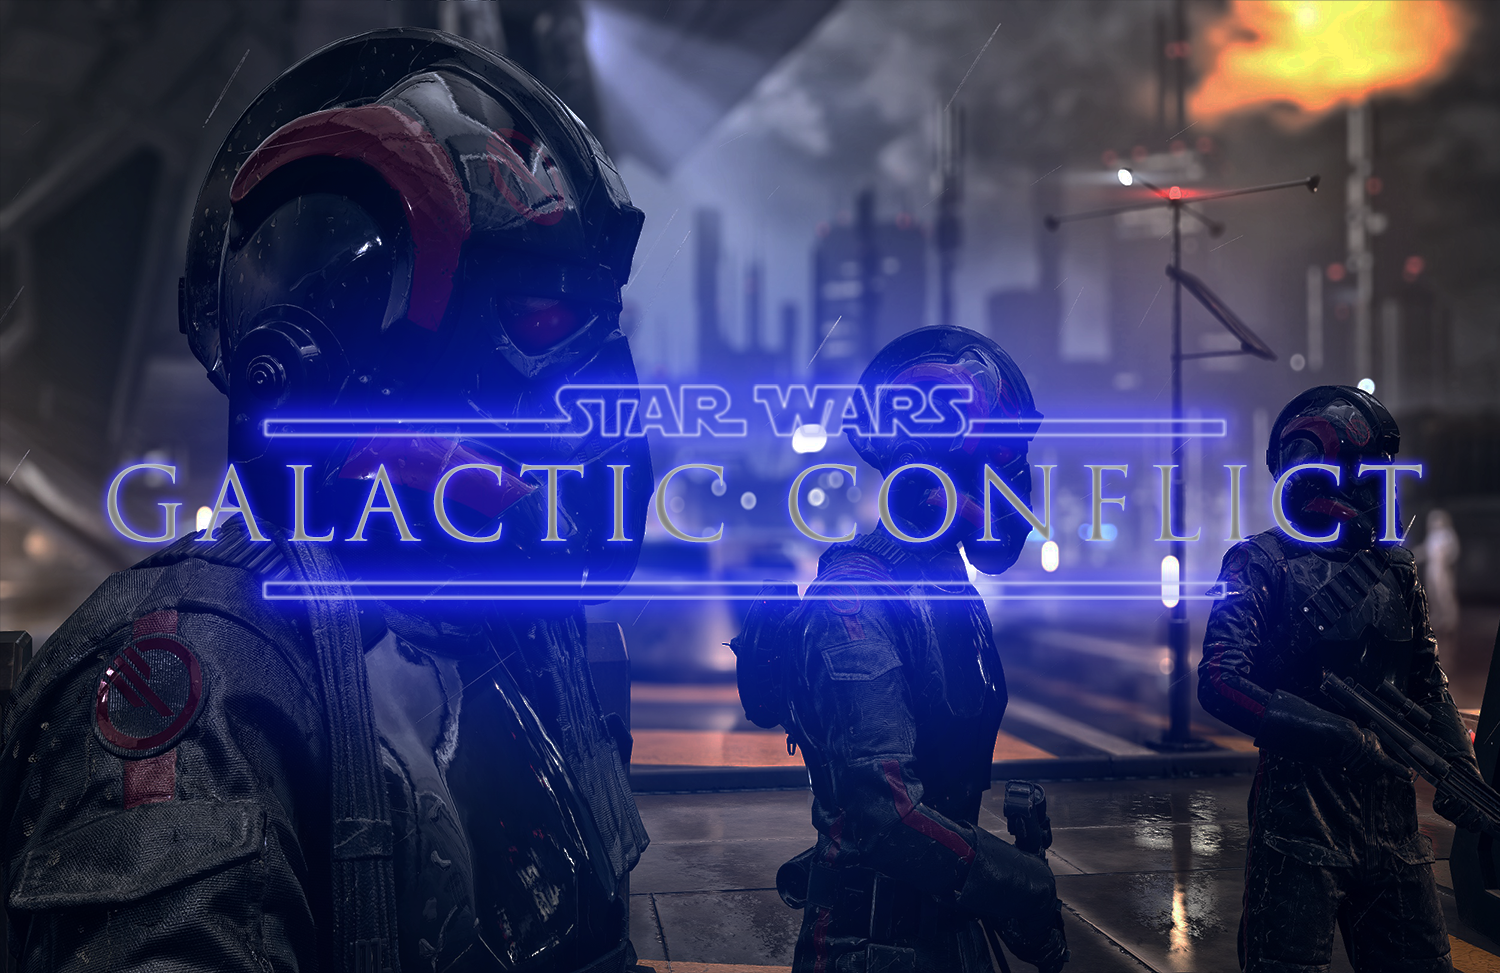 Galactic Conflict mod for Star Wars: Republic Commando - Mod DB